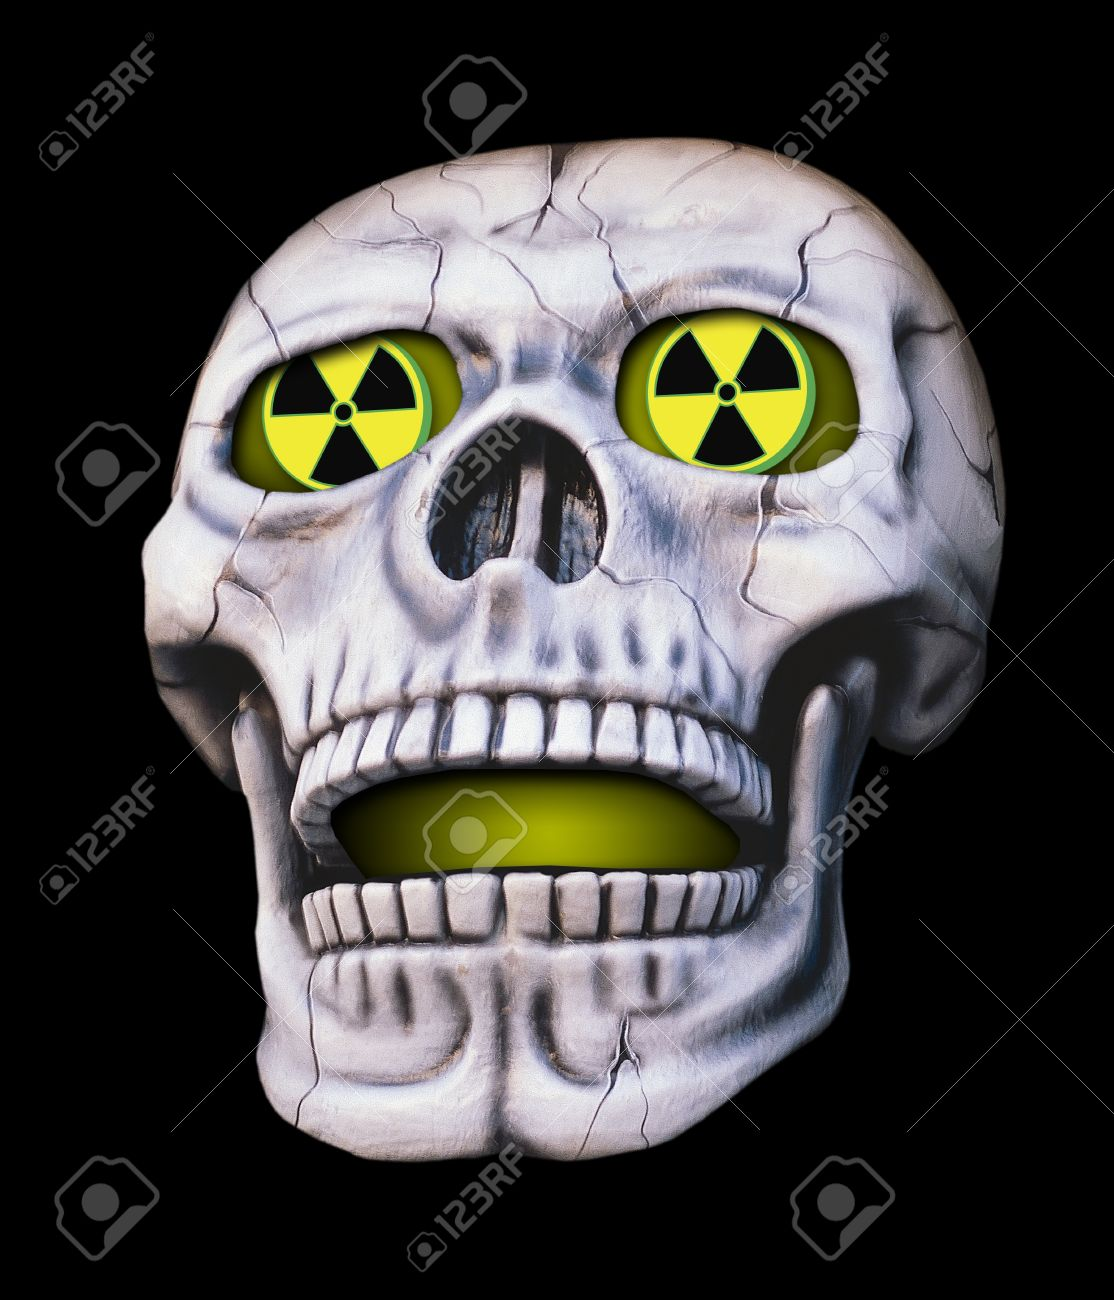 Nuclear Skull Stock Photo, Picture And Royalty Free Image. Image.